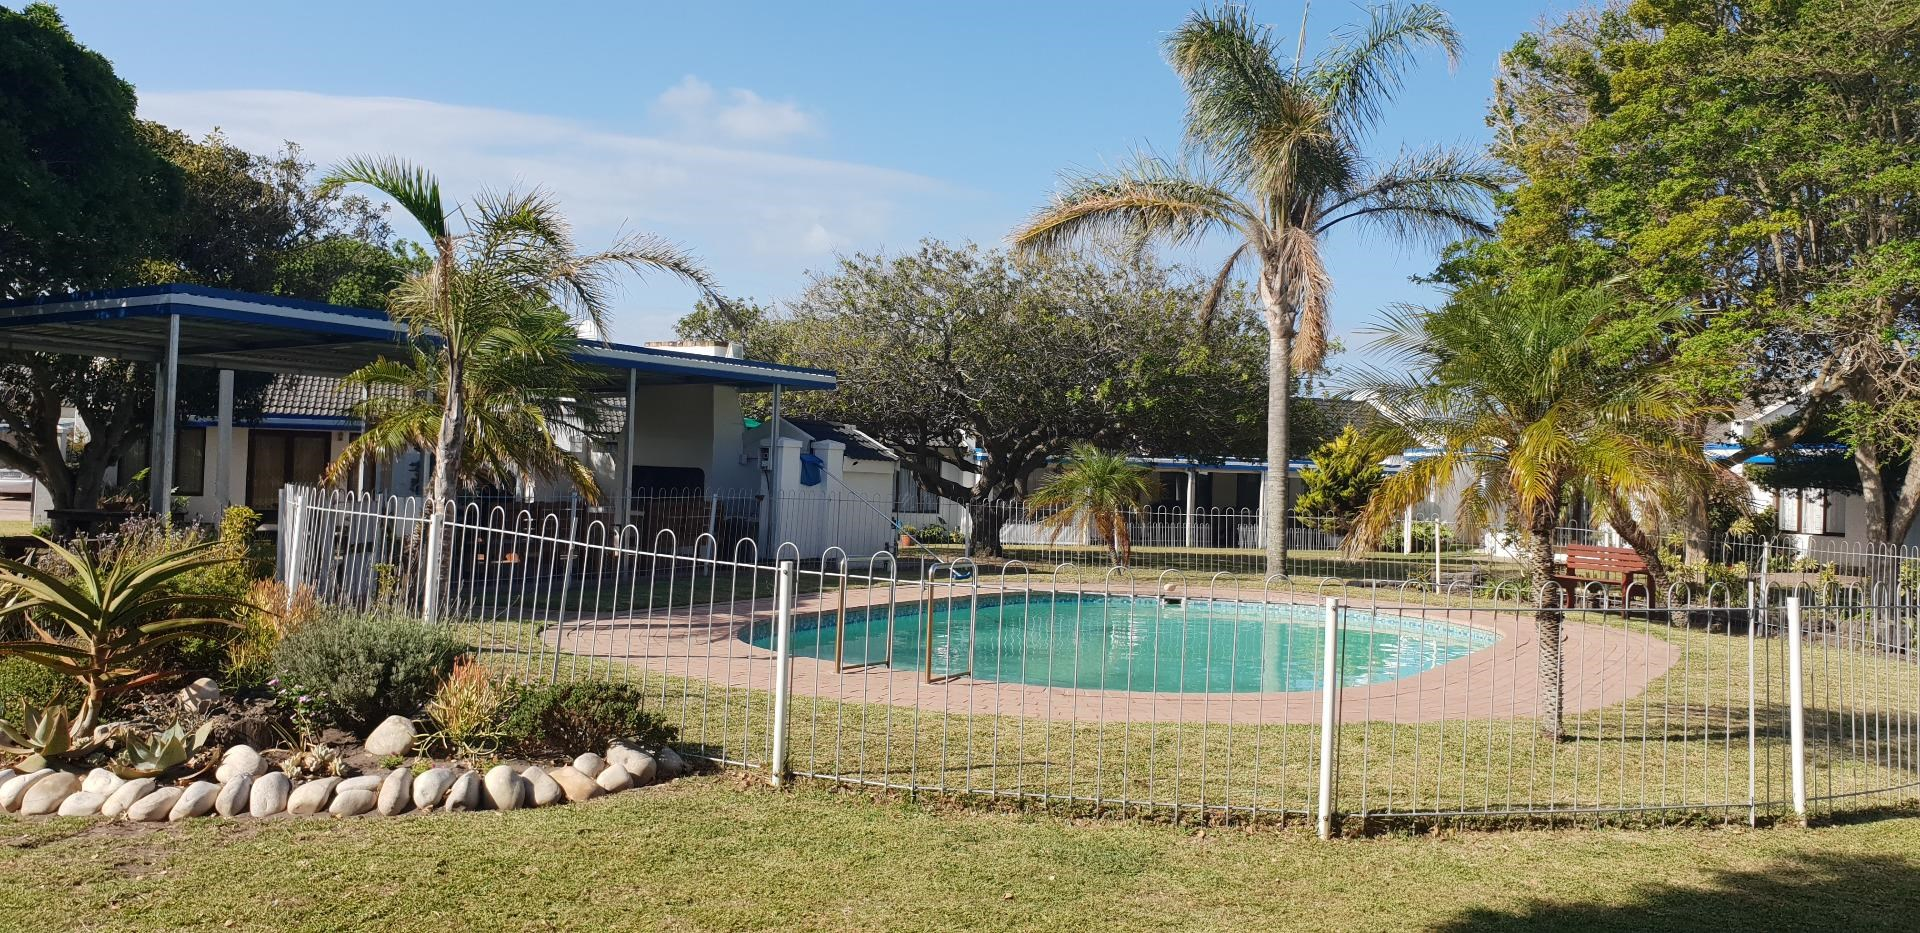 2 Bedroom Townhouse for Sale in Paradise Beach